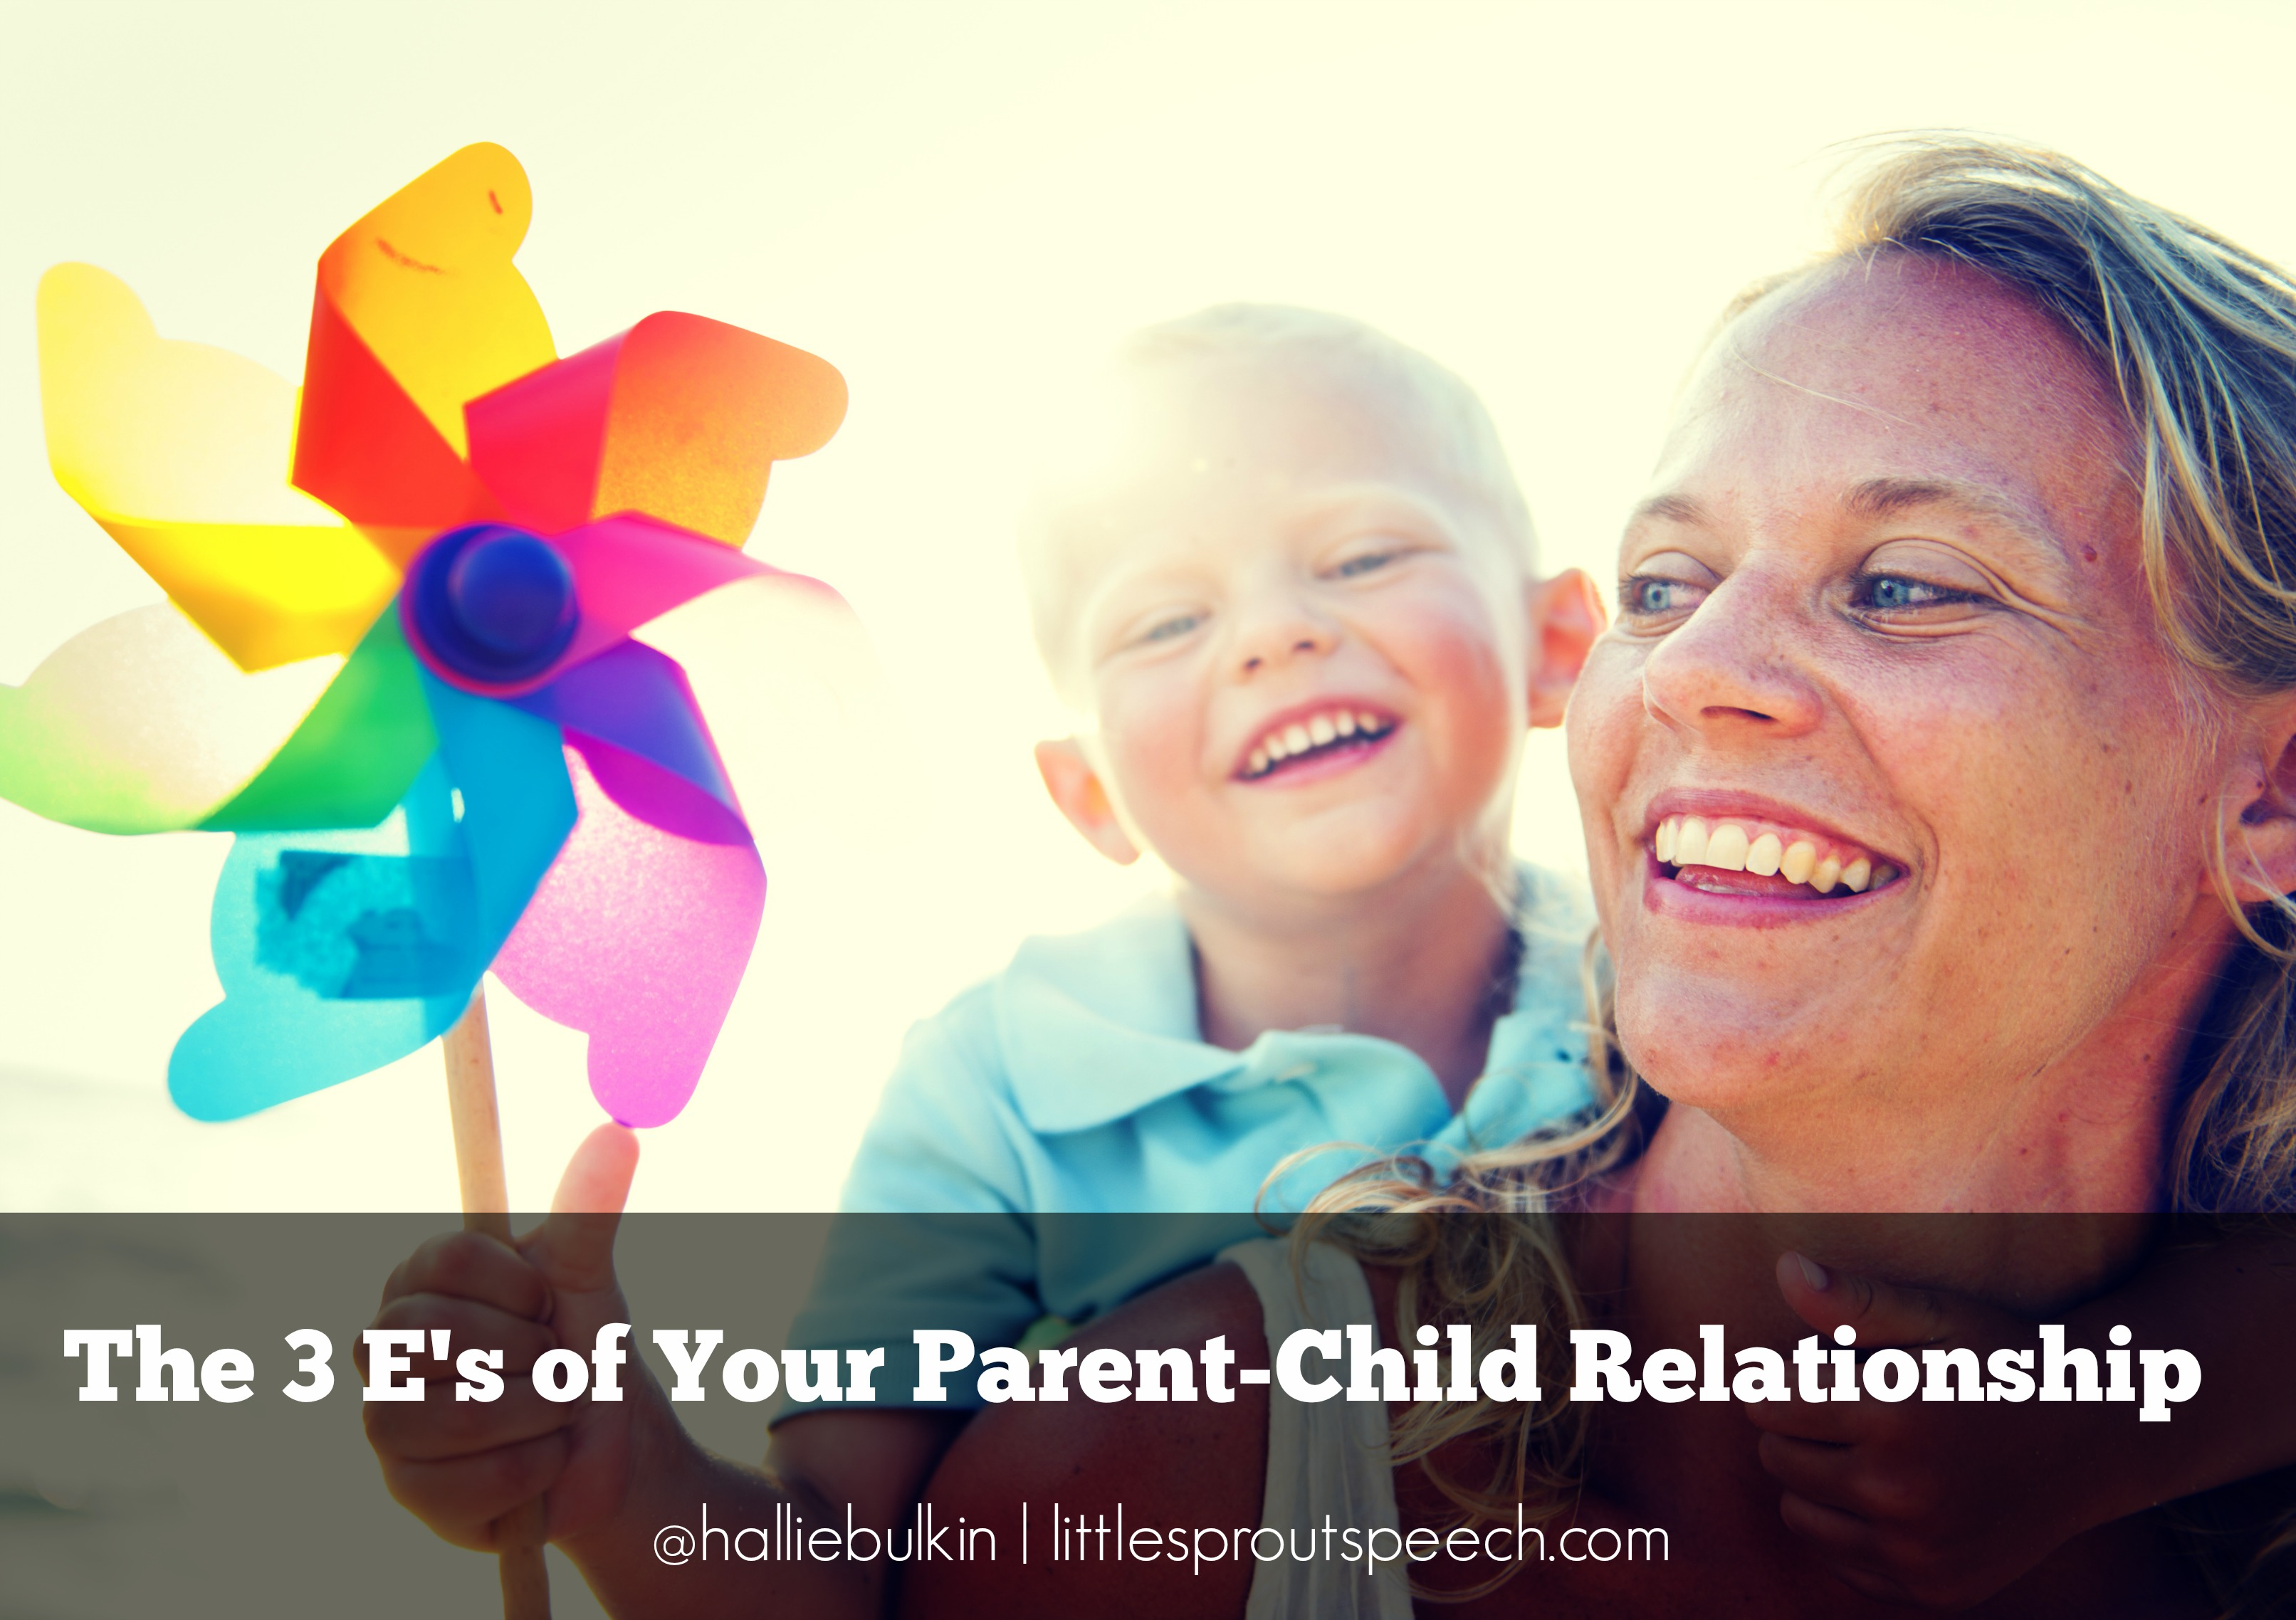 Why is it important for children to have a good relationship with their parents?